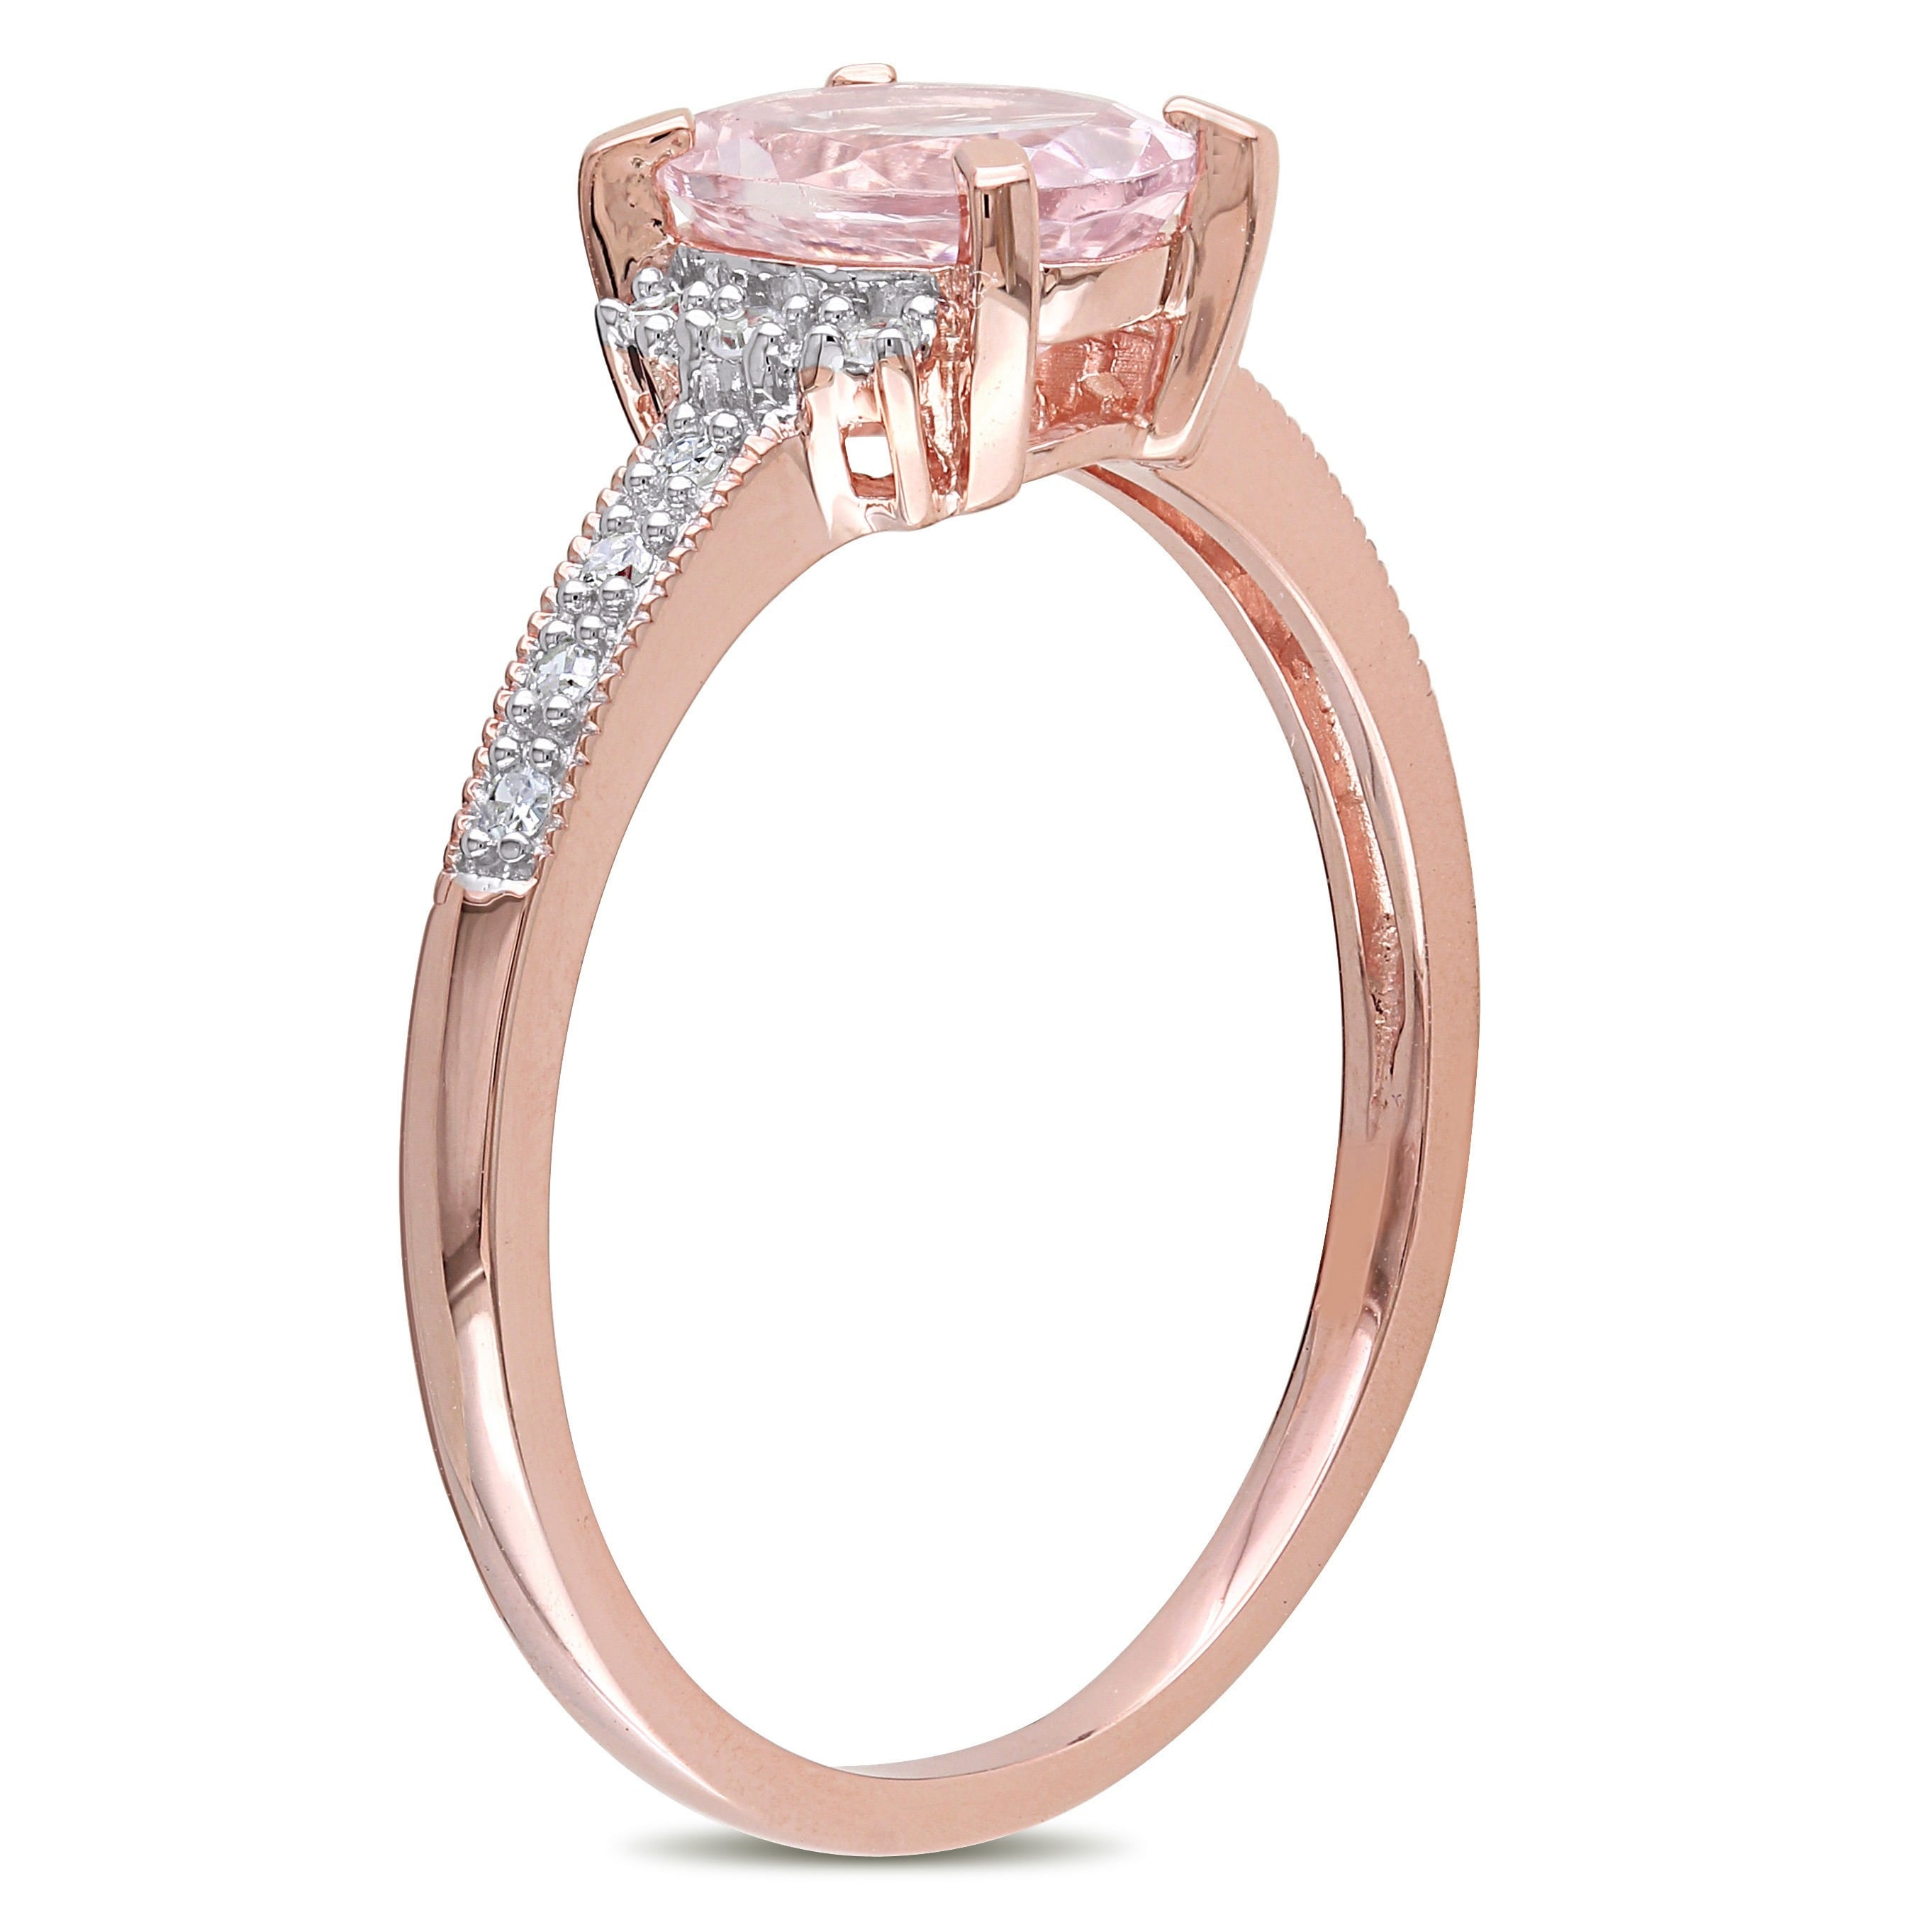 elongated infinity il peach morganite pink promise cut oval gold vintage rose products facets bead engagement diamond brilliant rope ring twist fullxfull